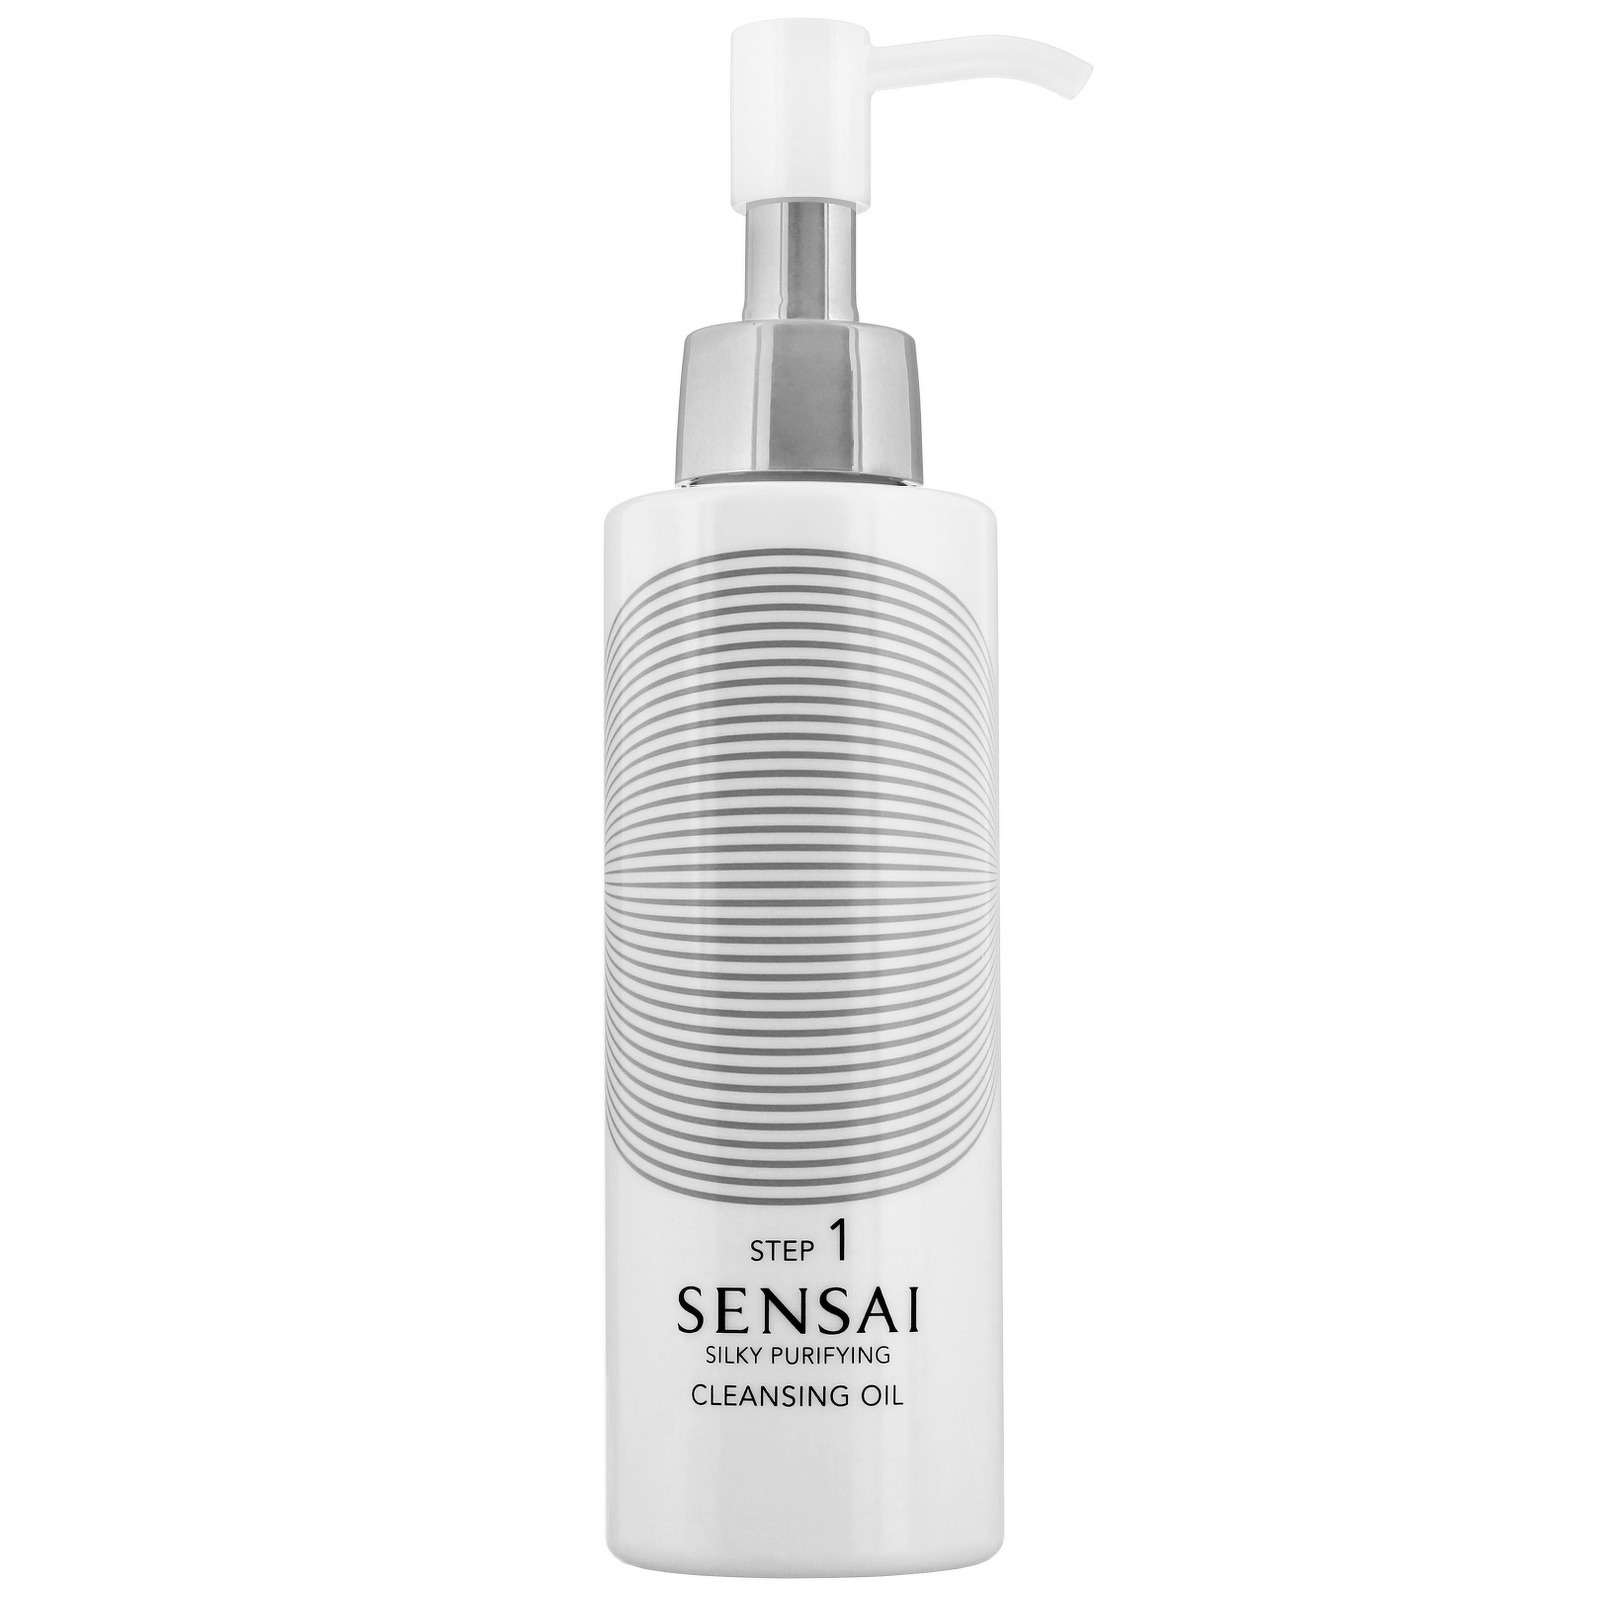 SENSAI Silky Purifying Step 1 Remove & Reveal Cleansing Oil 150ml